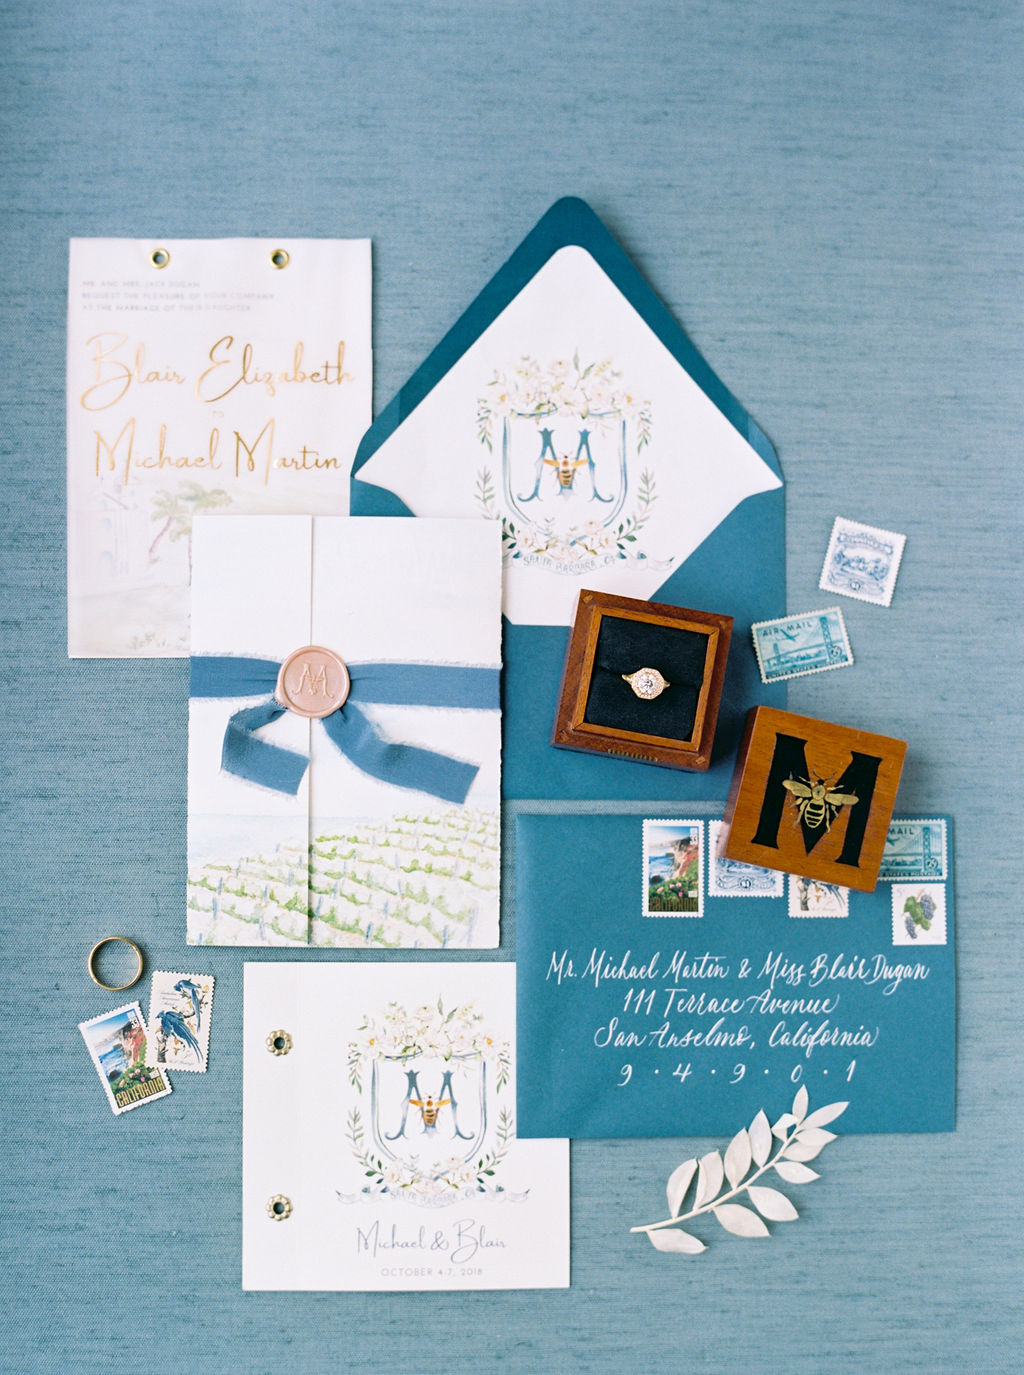 wedding invitation flat lay.JPG